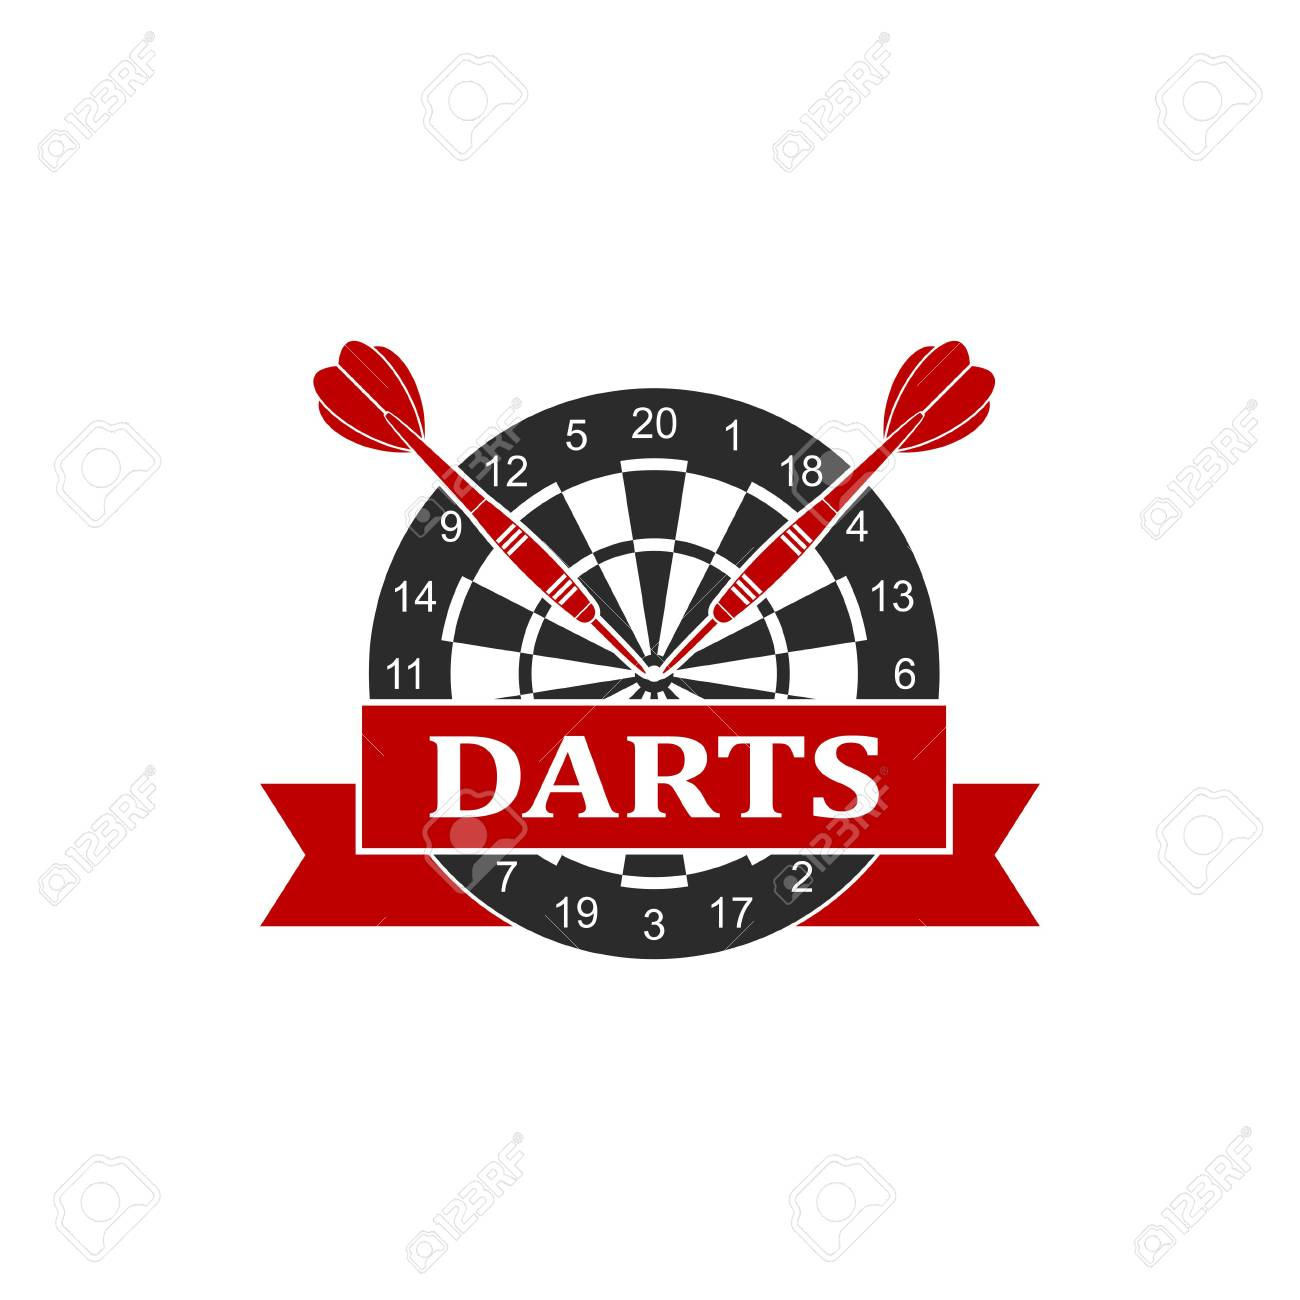 Background of darts